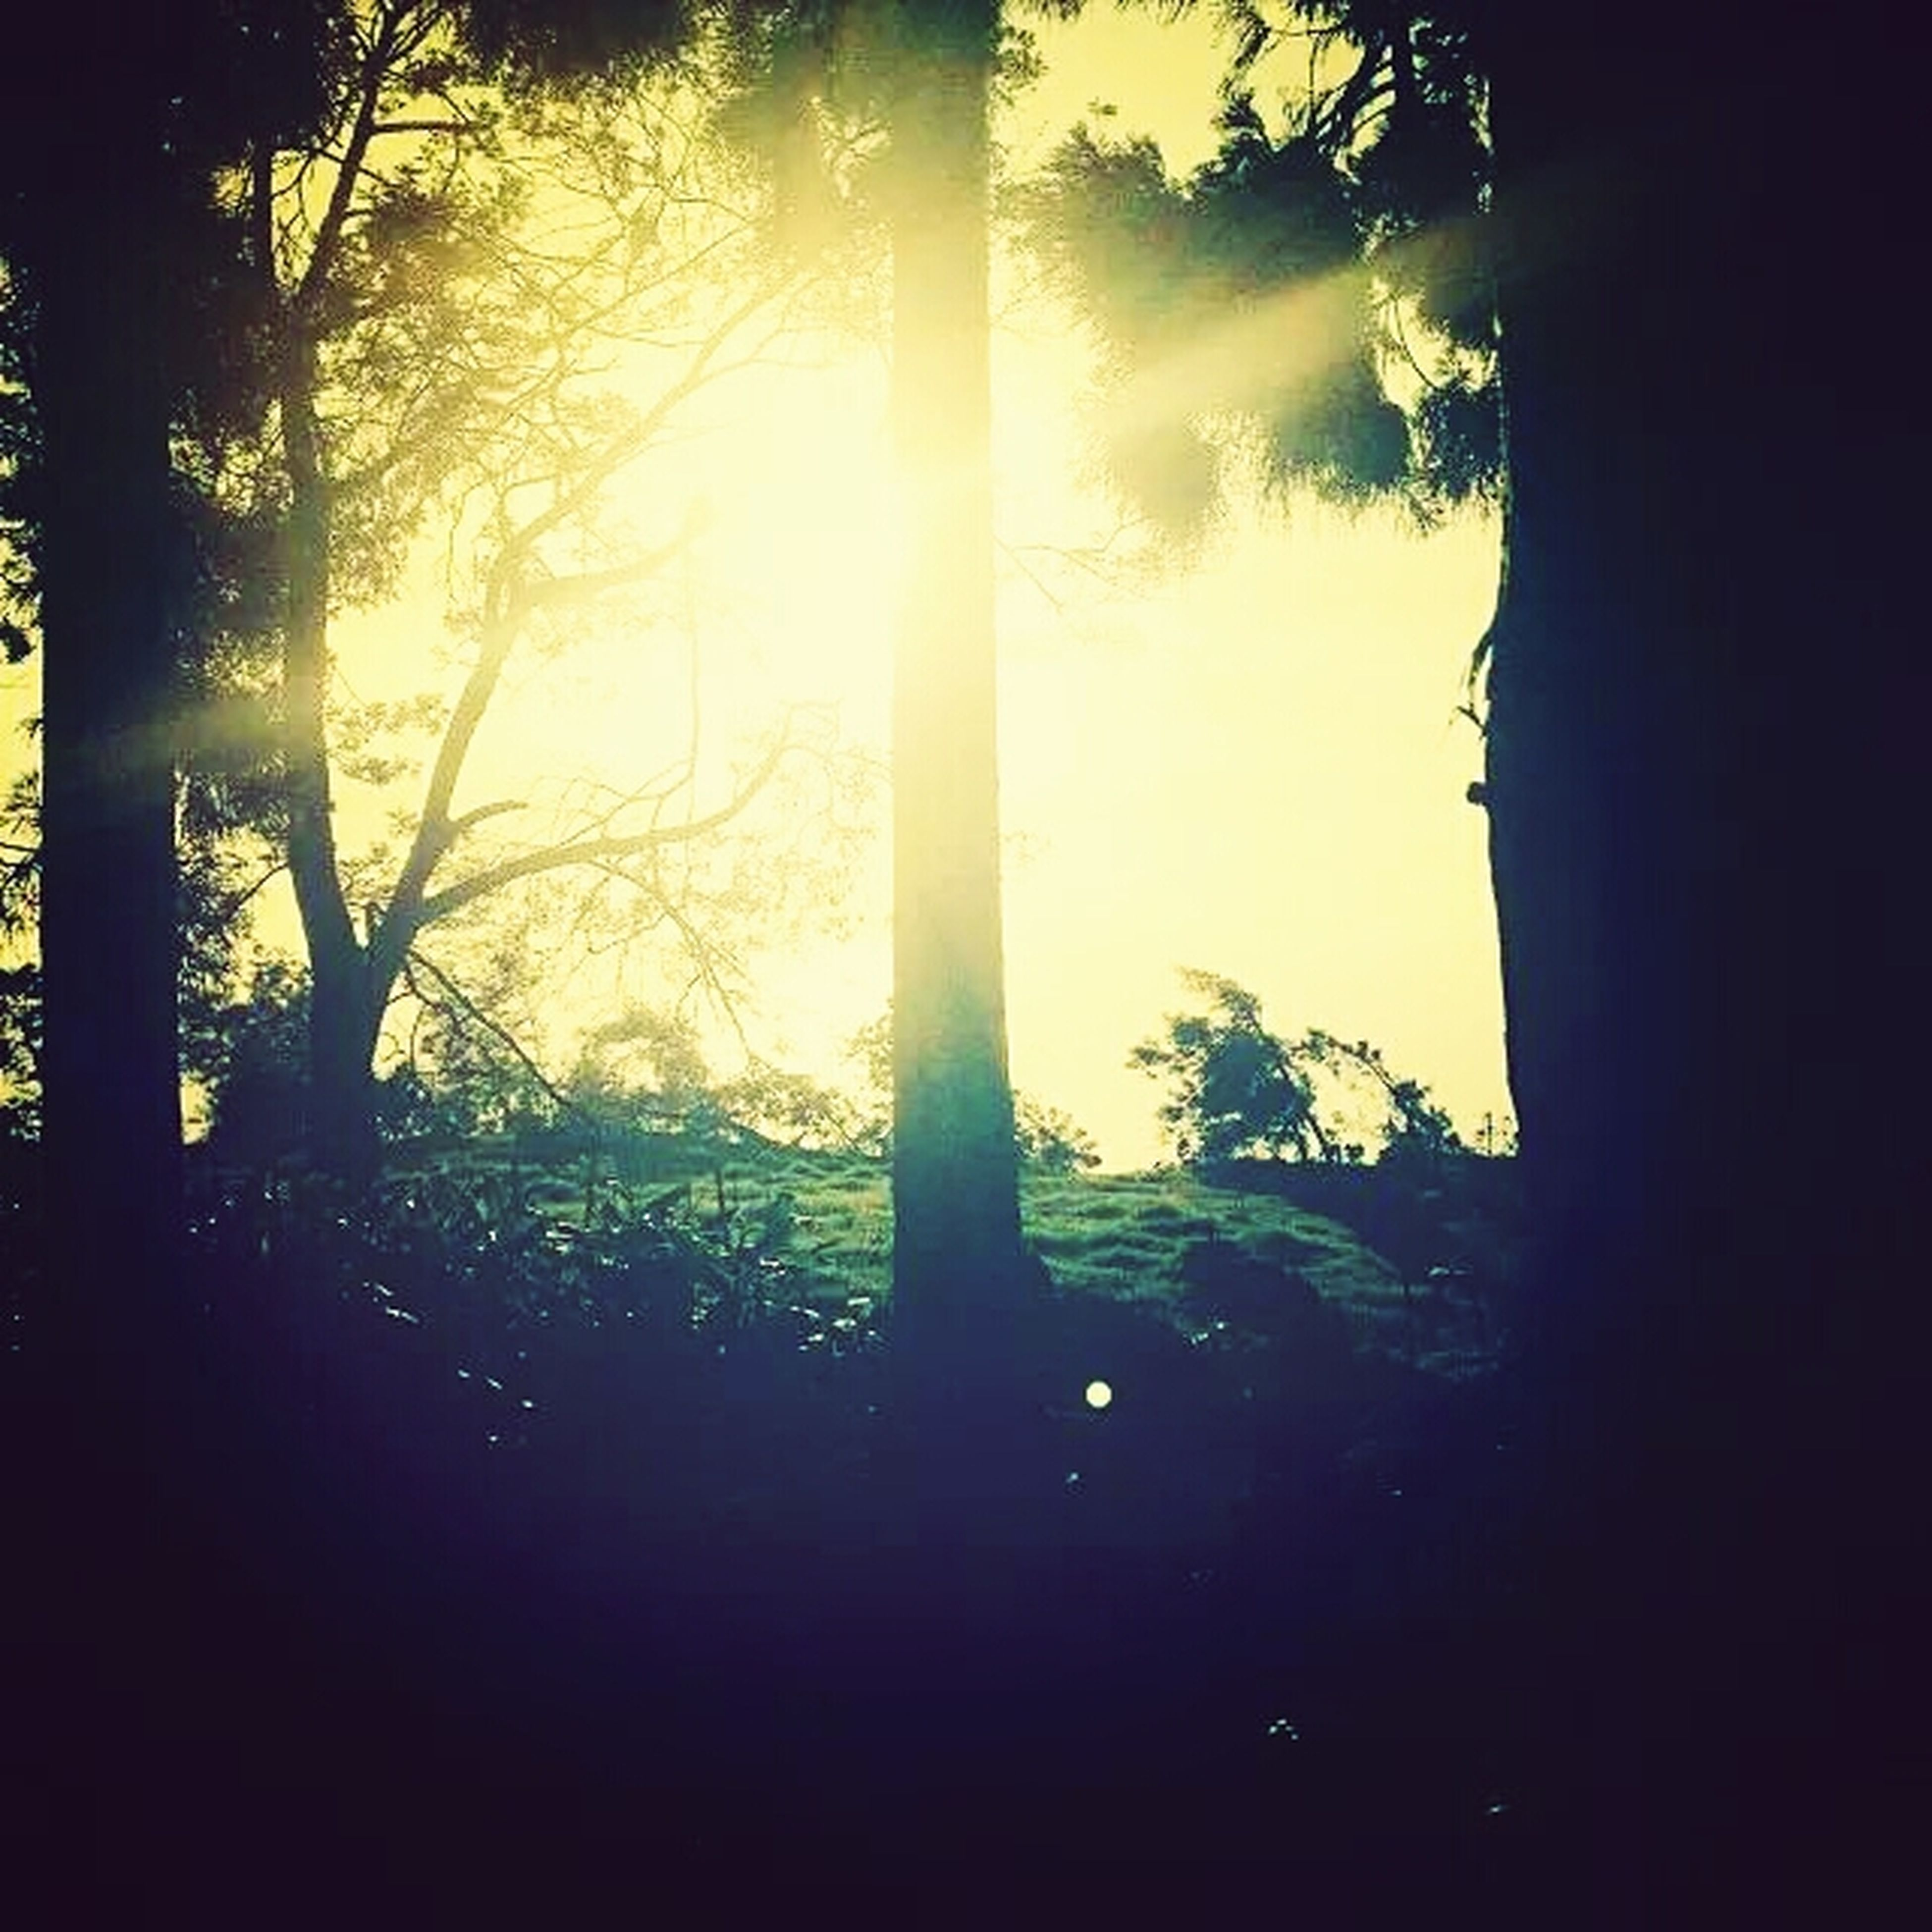 tree, silhouette, sun, sunset, tranquility, tranquil scene, sunlight, tree trunk, sunbeam, beauty in nature, growth, scenics, nature, lens flare, back lit, sky, forest, branch, idyllic, no people